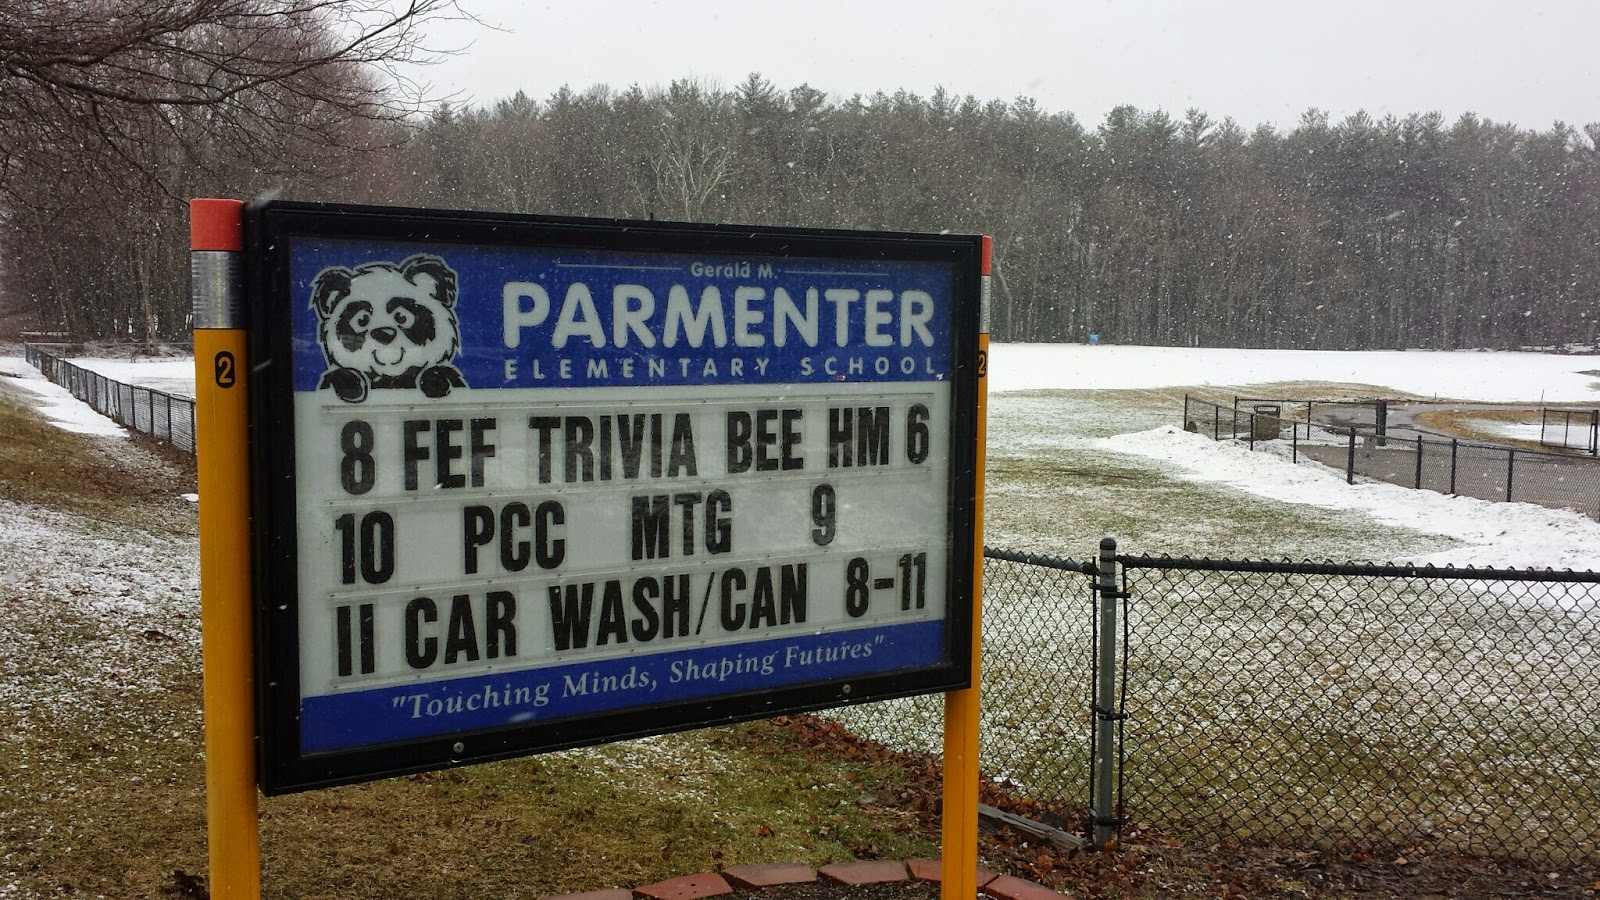 The FEF Trivia Bee is scheduled for April 8